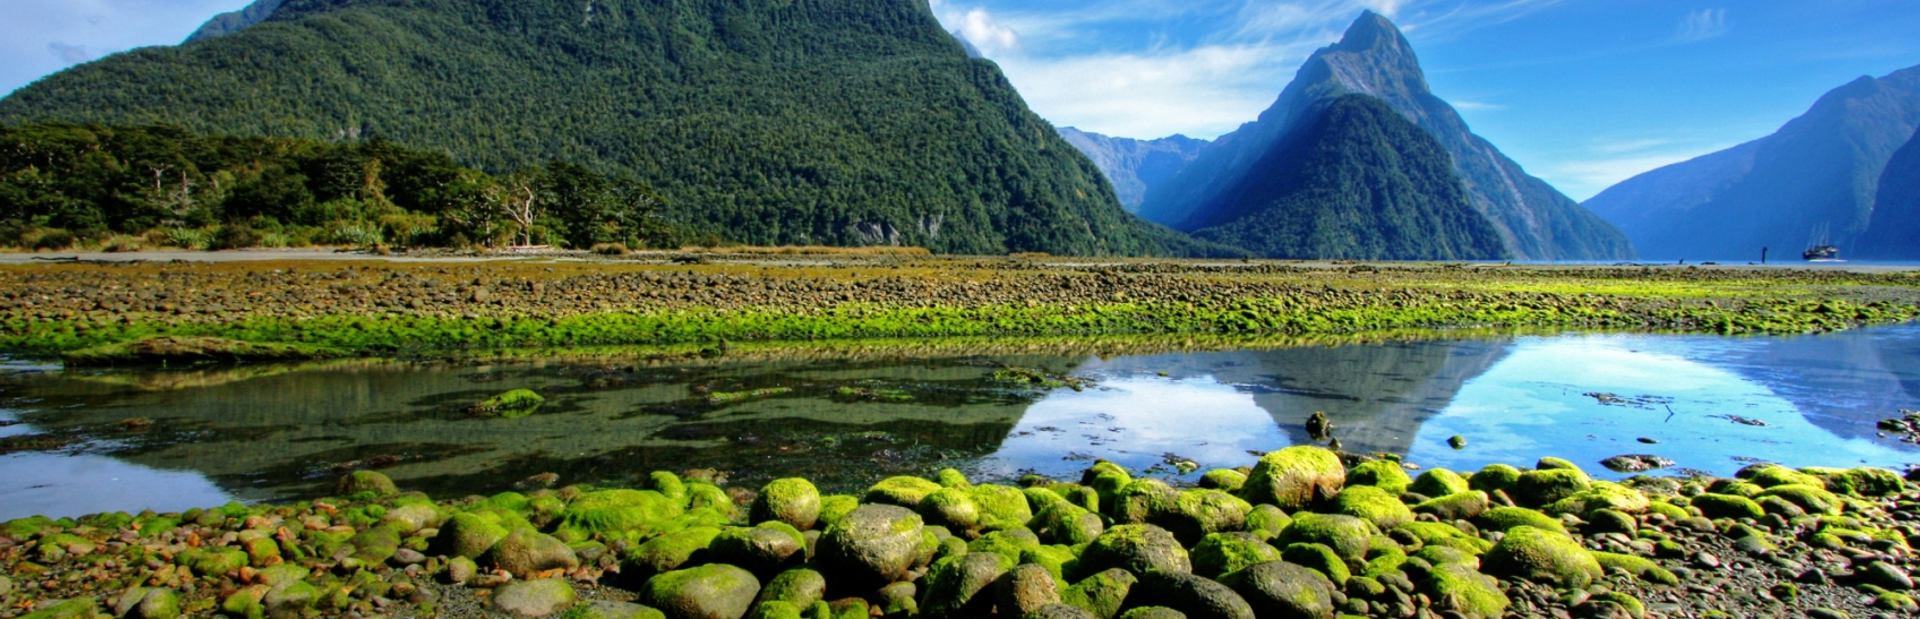 Find Yourself Enchanted by New Zealand